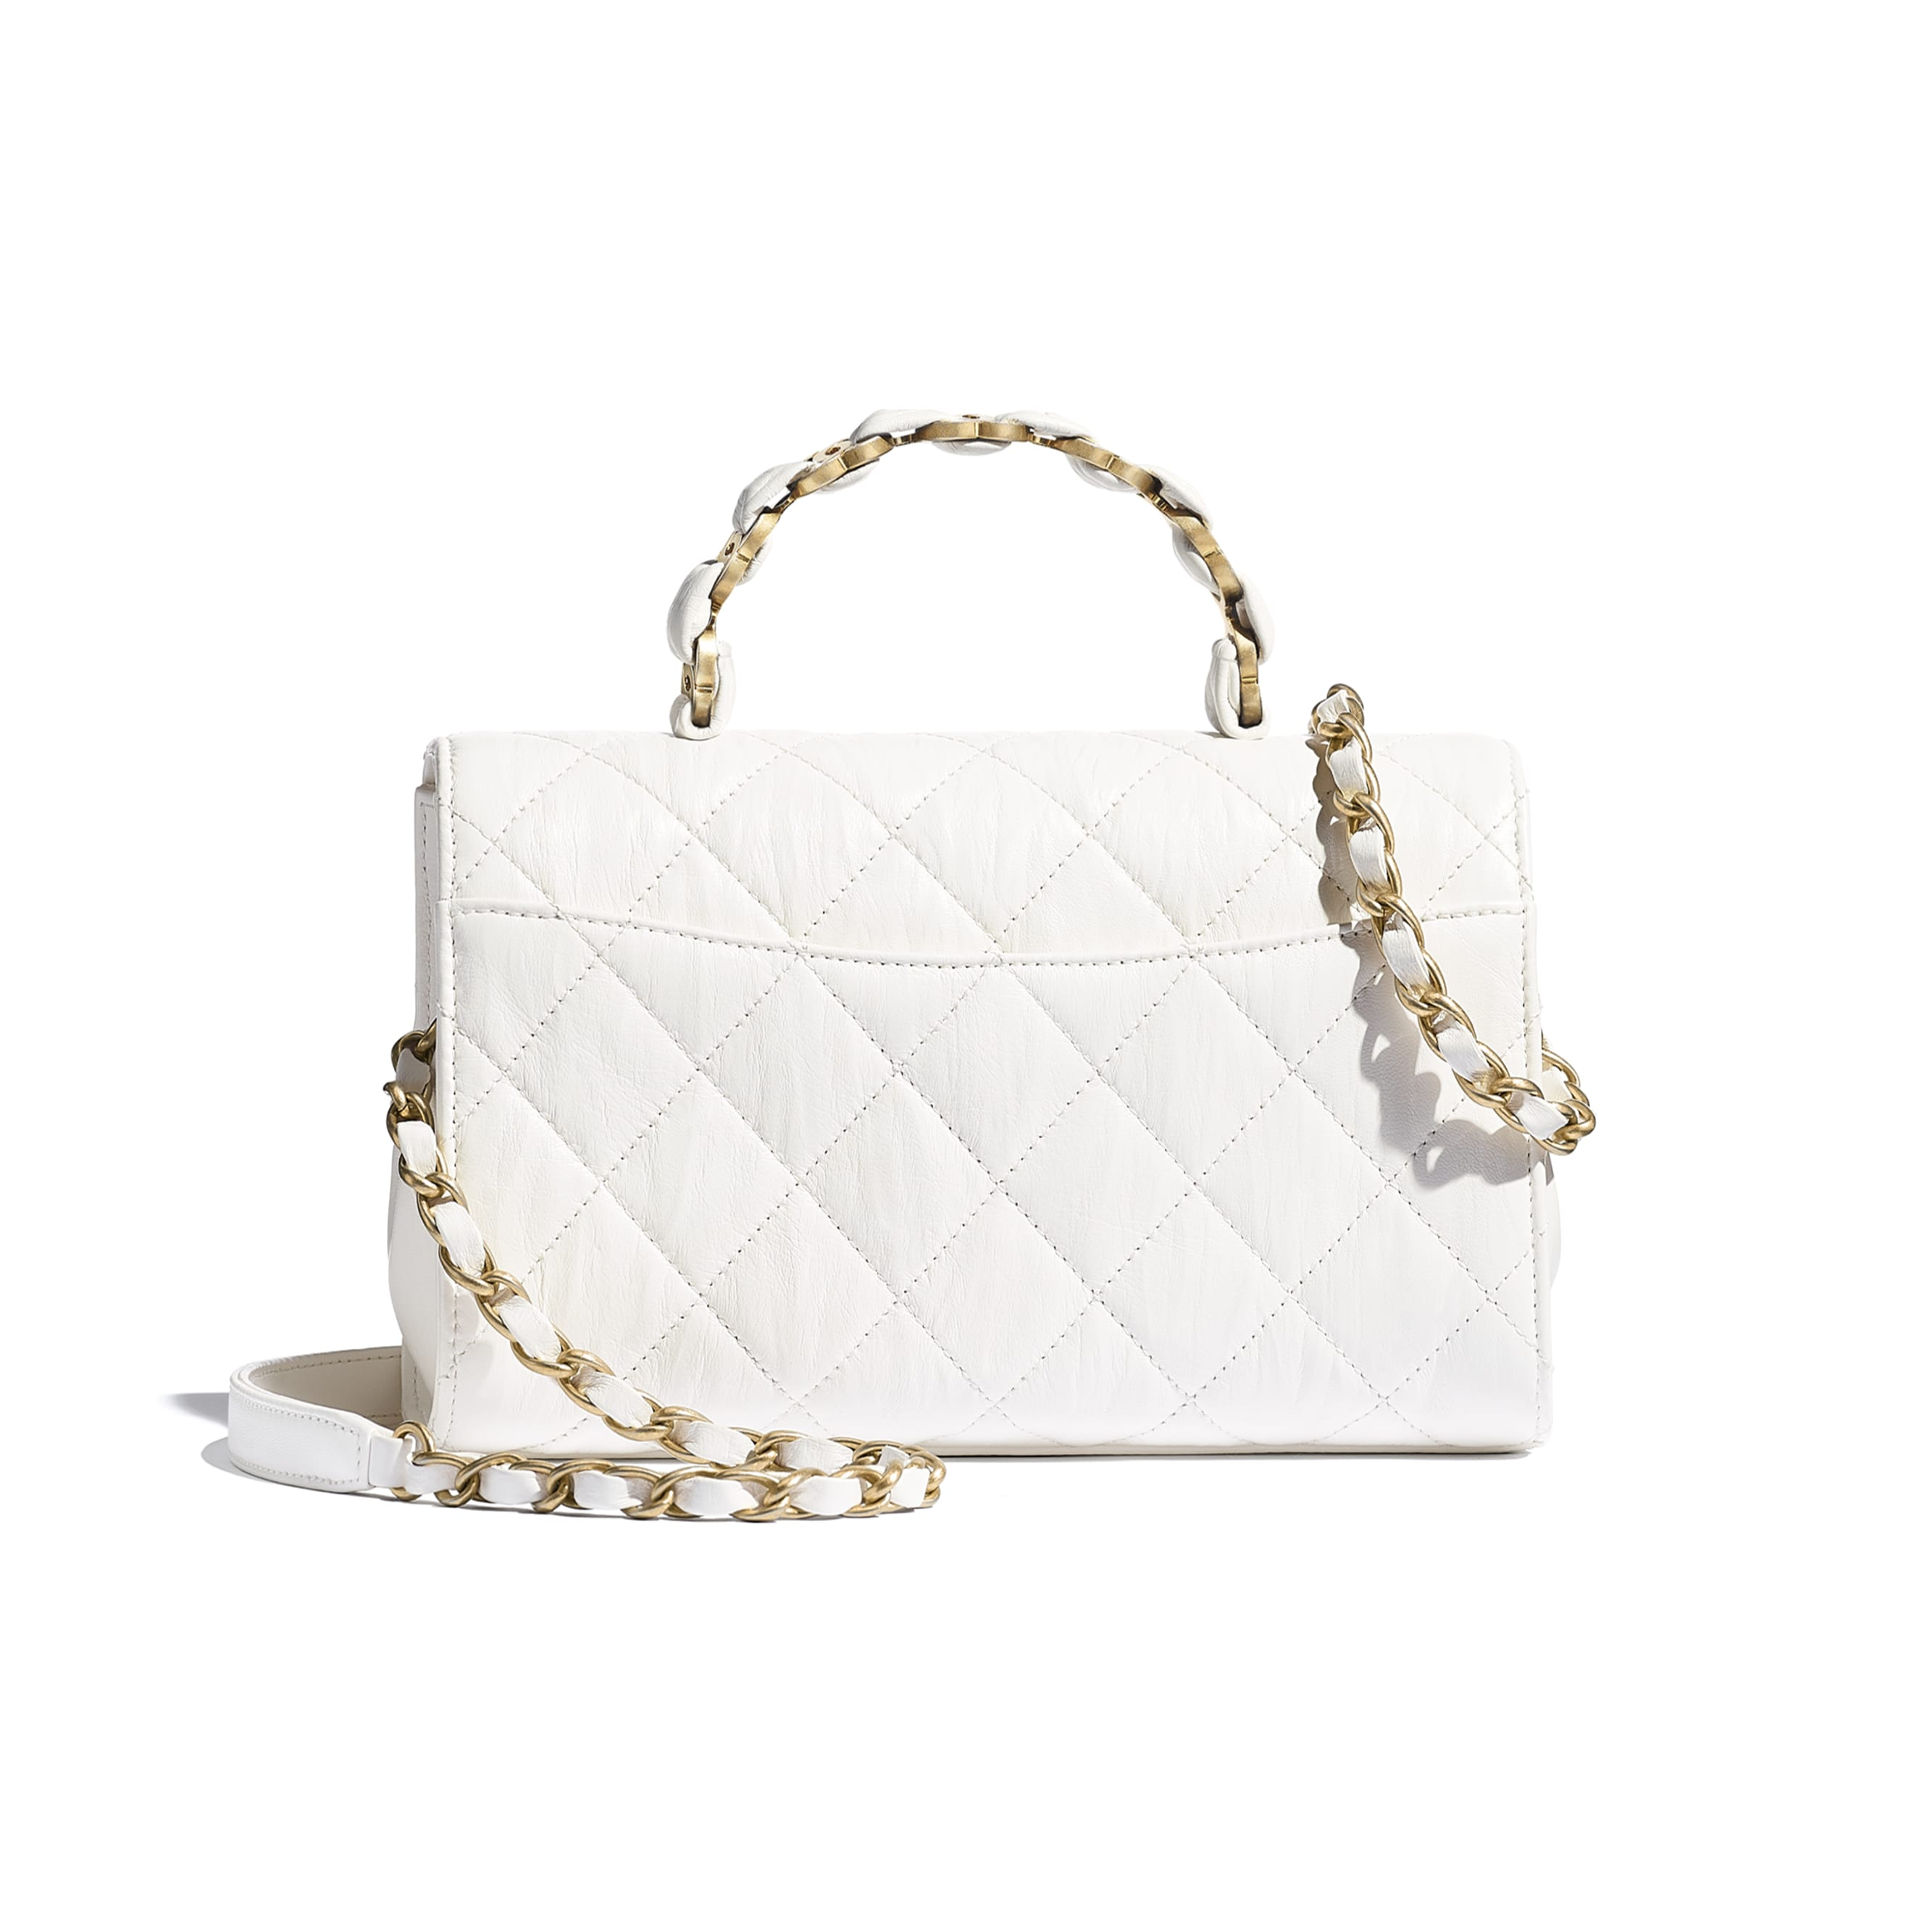 Small Flap Bag With Top Handle - White - Crumpled Lambskin & Gold-Tone Metal - CHANEL - Alternative view - see standard sized version